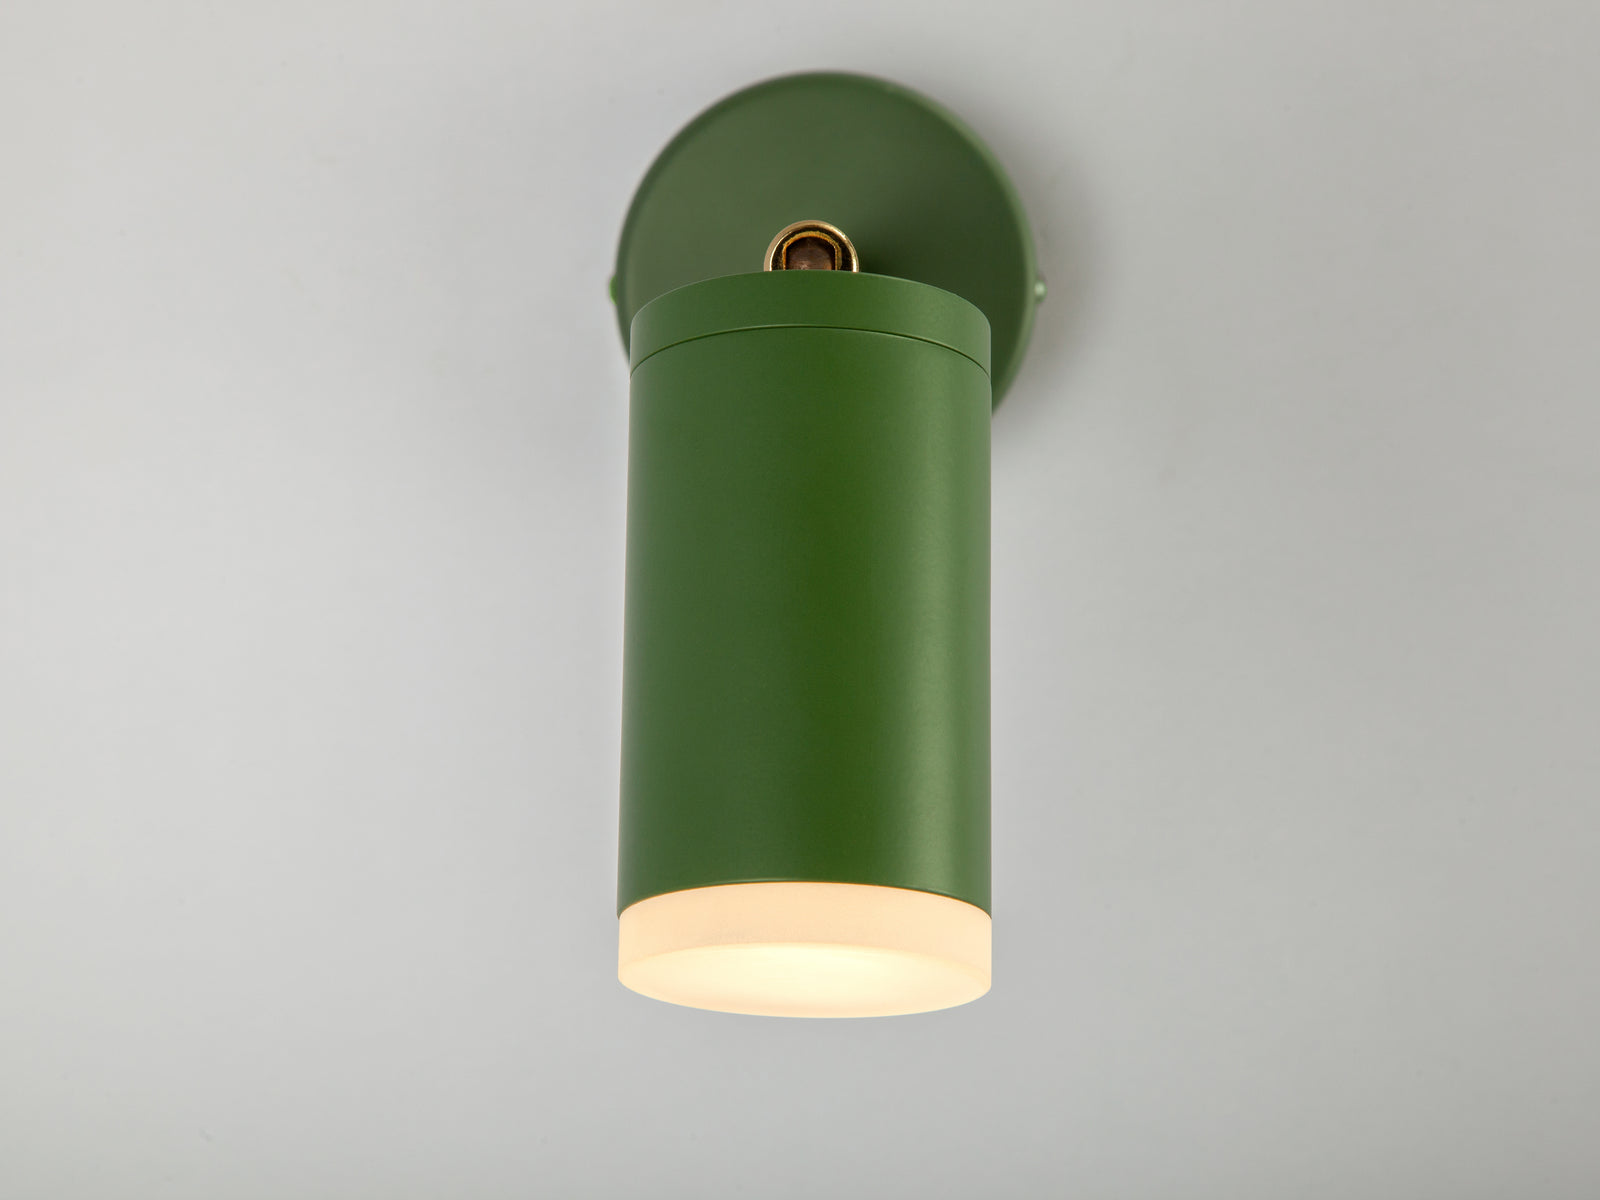 LED task wall light olive | zoom | houseof.com